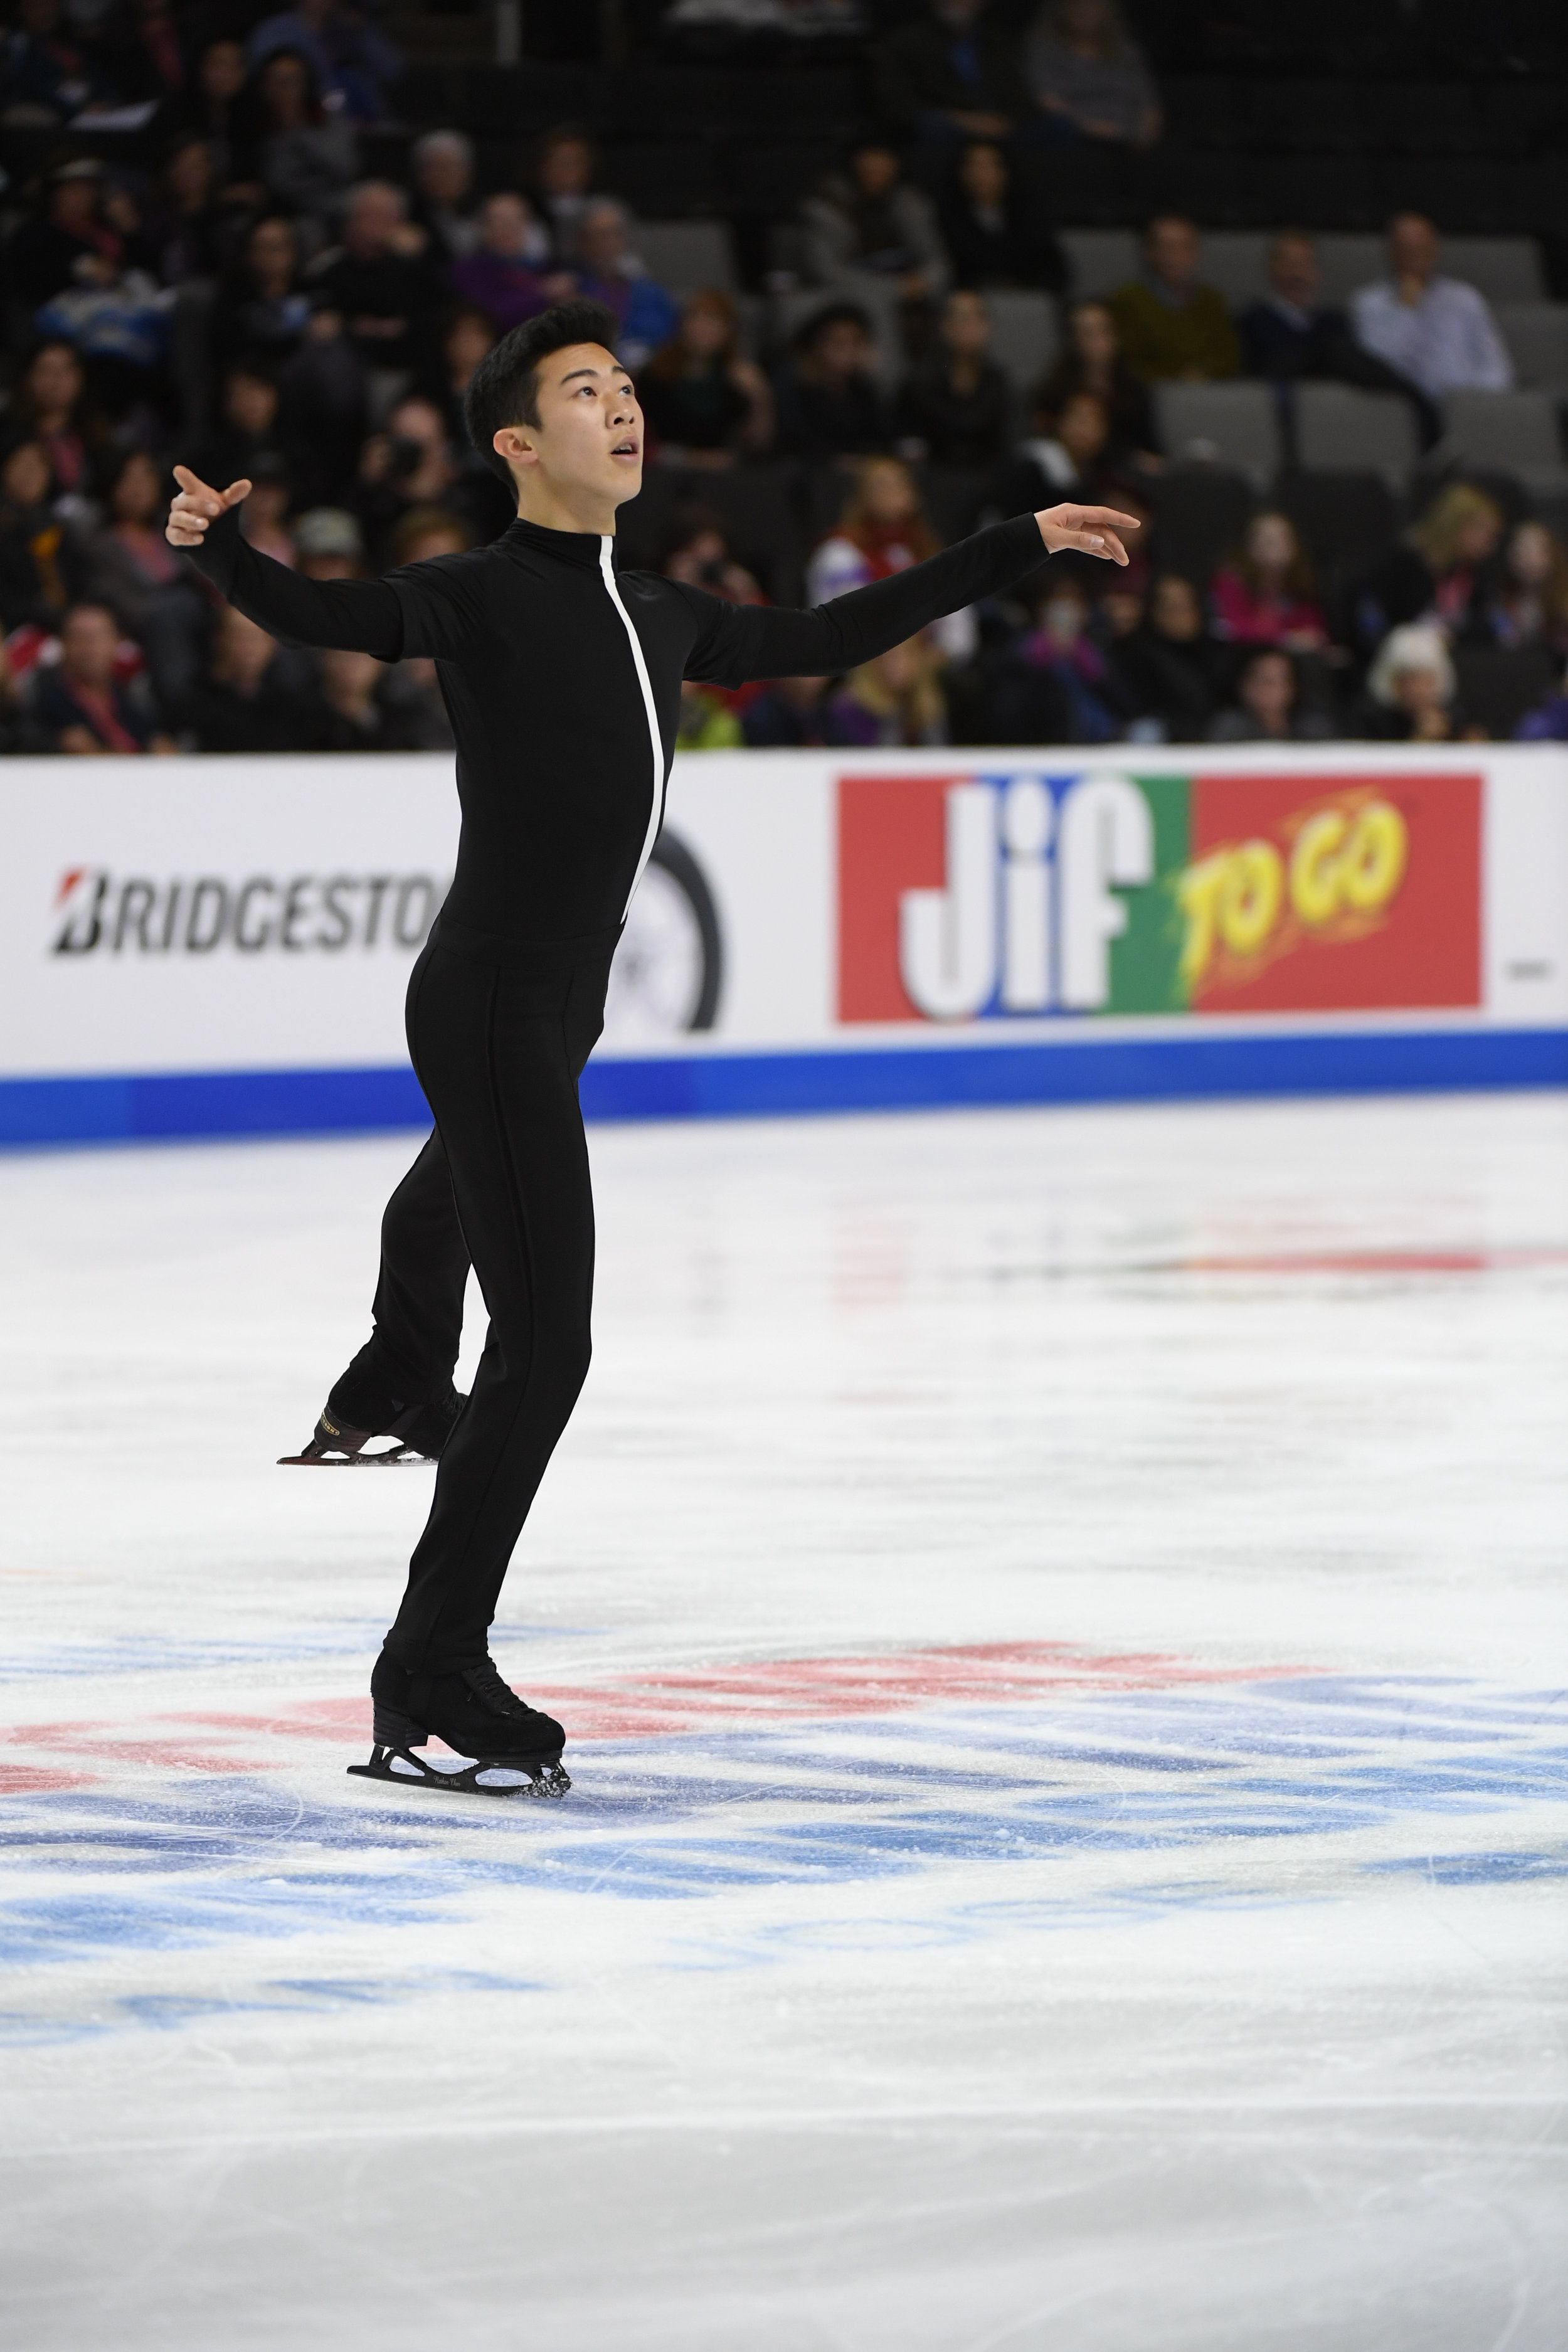 """Nathan Chen, 19 - Nathan Chen, a 19-year-old from Salt Lake City, has excelled at athleticism and artistry from a young age. As a 10-year-old at the U.S. Nationals skating to """"Peter and the Wolf,"""" he predicted that he would be competing in the 2018 Olympics, when he would be old enough to qualify for the competition. His dream came true: clad in a Vera Wang costume, he presented mature programs to defend his U.S. National Title and make the Winter Olympic team. Finishing just off the podium in fifth place in Pyeongchang, South Korea, he gave a historic performance with six quadruple jumps, a record in Olympic competition. — M.Y.Image Credit: Jay Adeff/U.S. Figure Skating"""